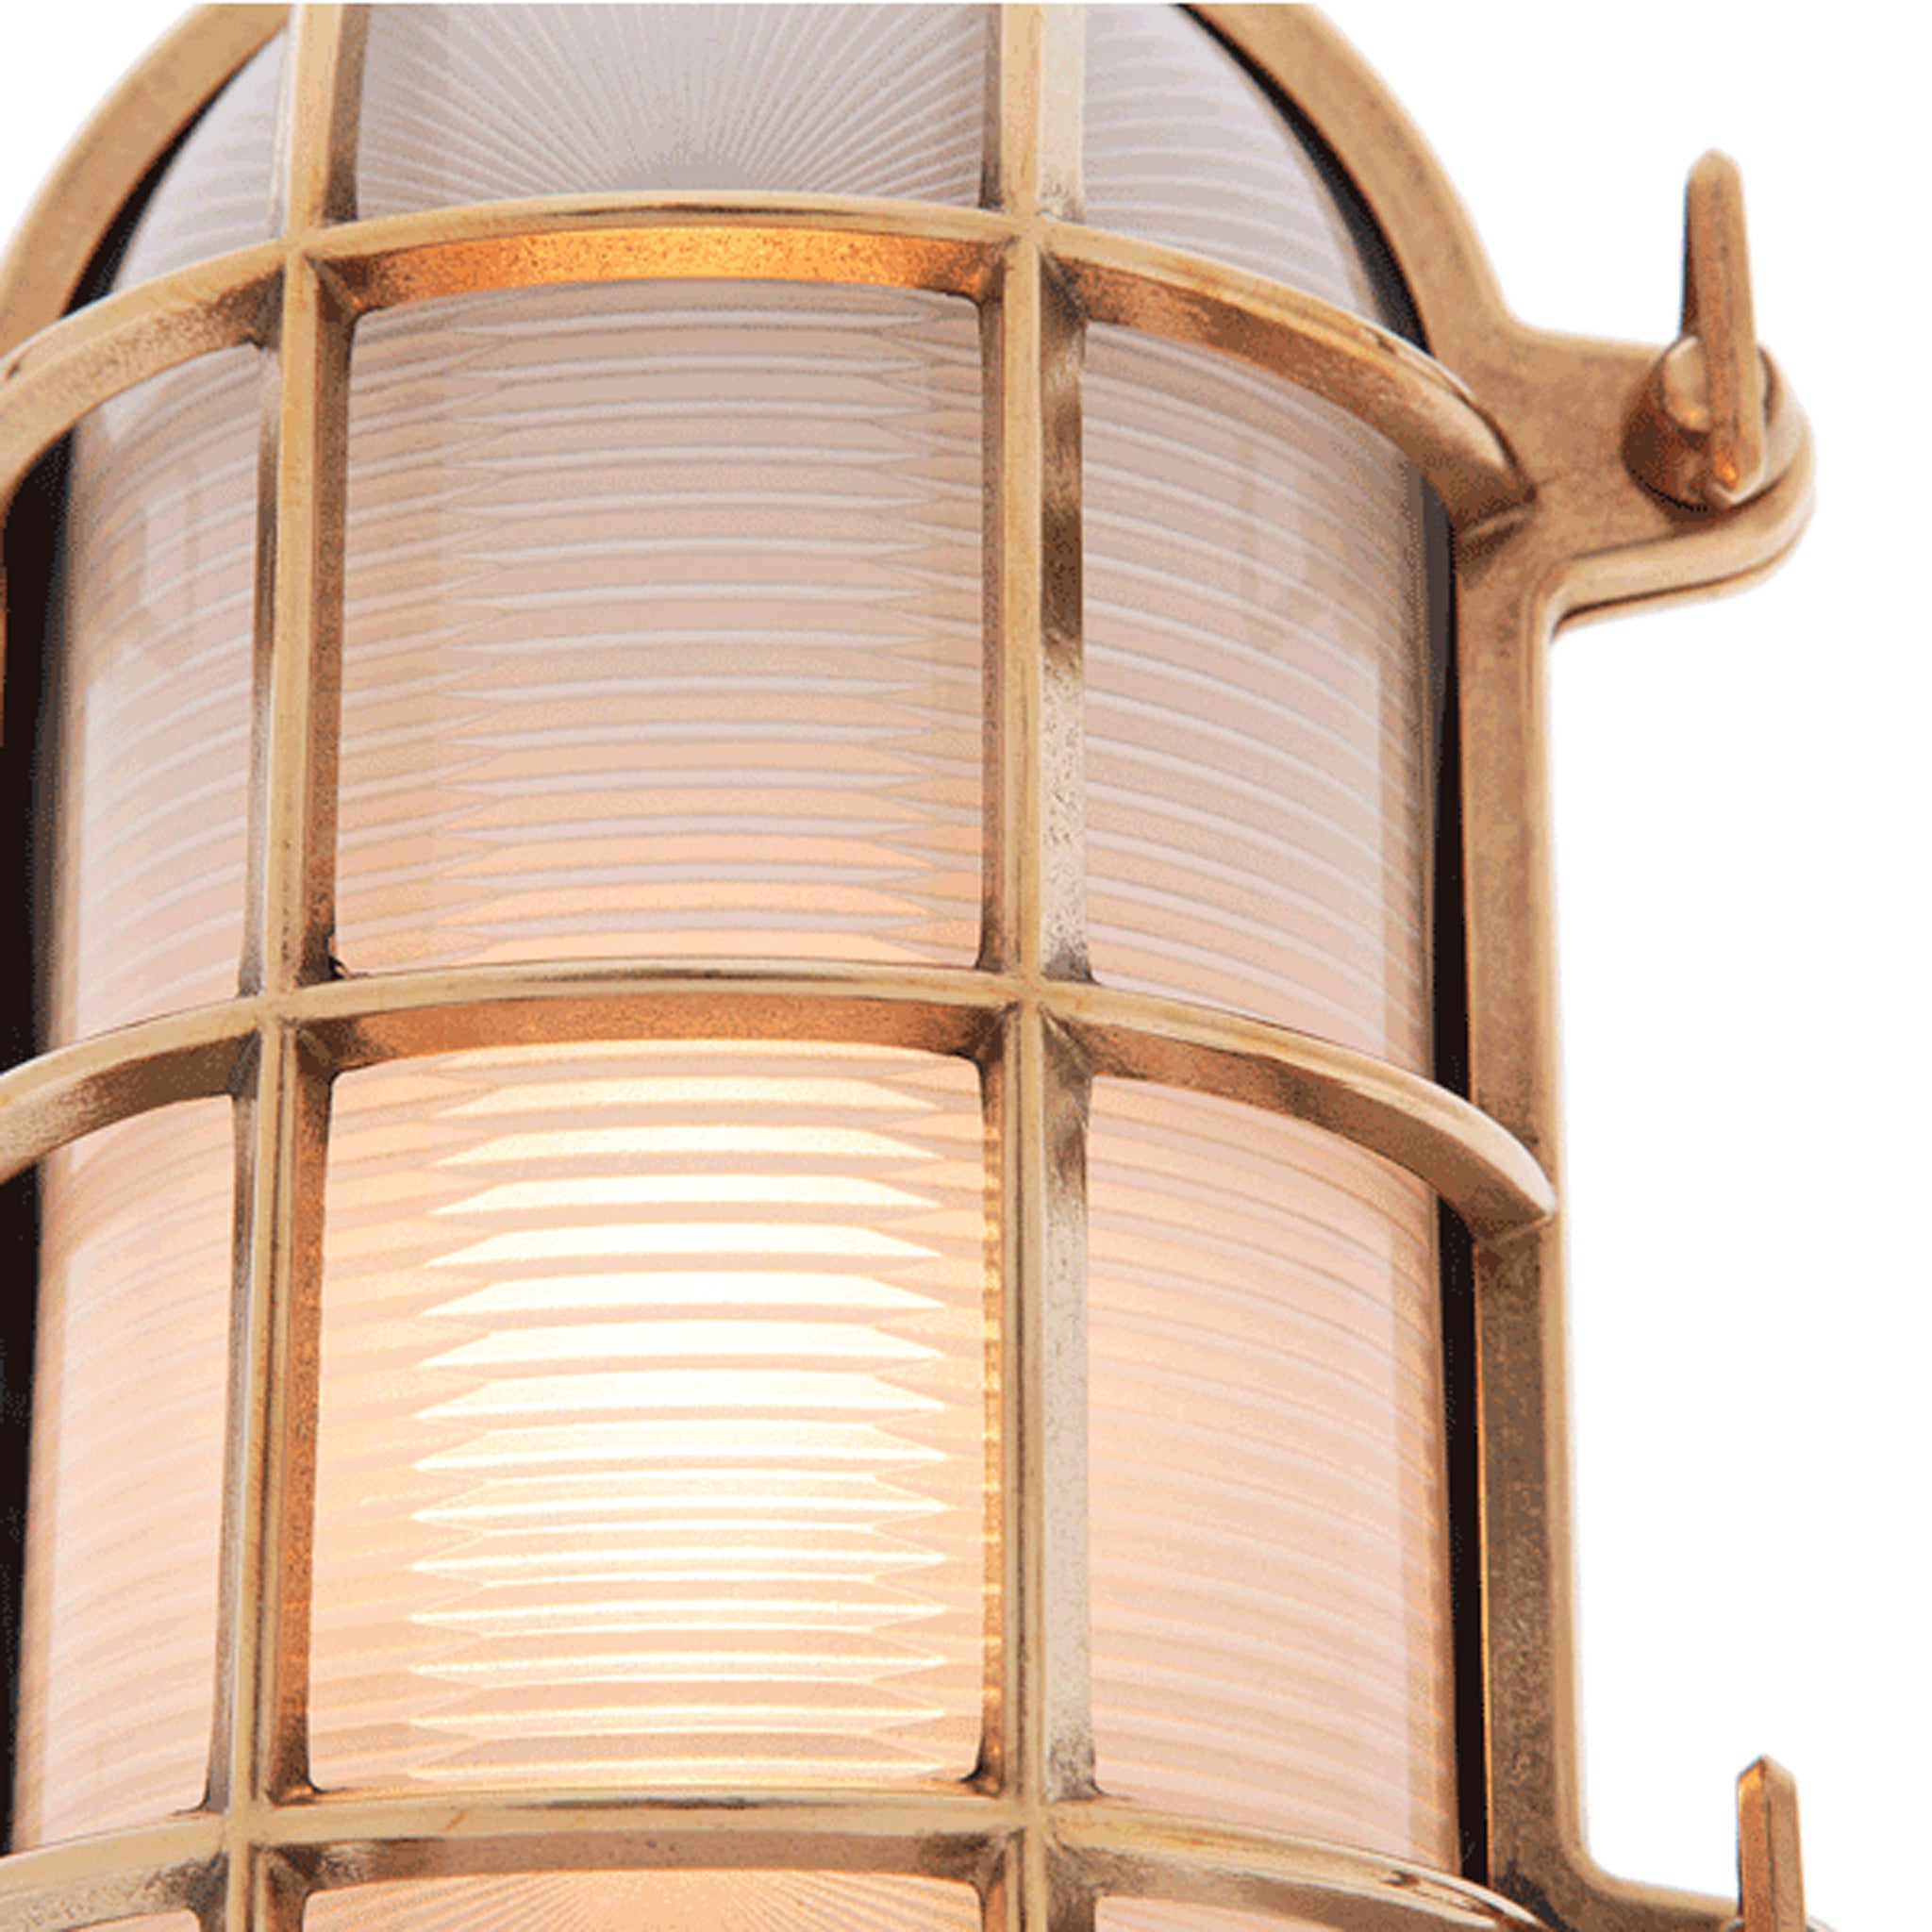 Large Oval Bulkhead Light - 235 mm length